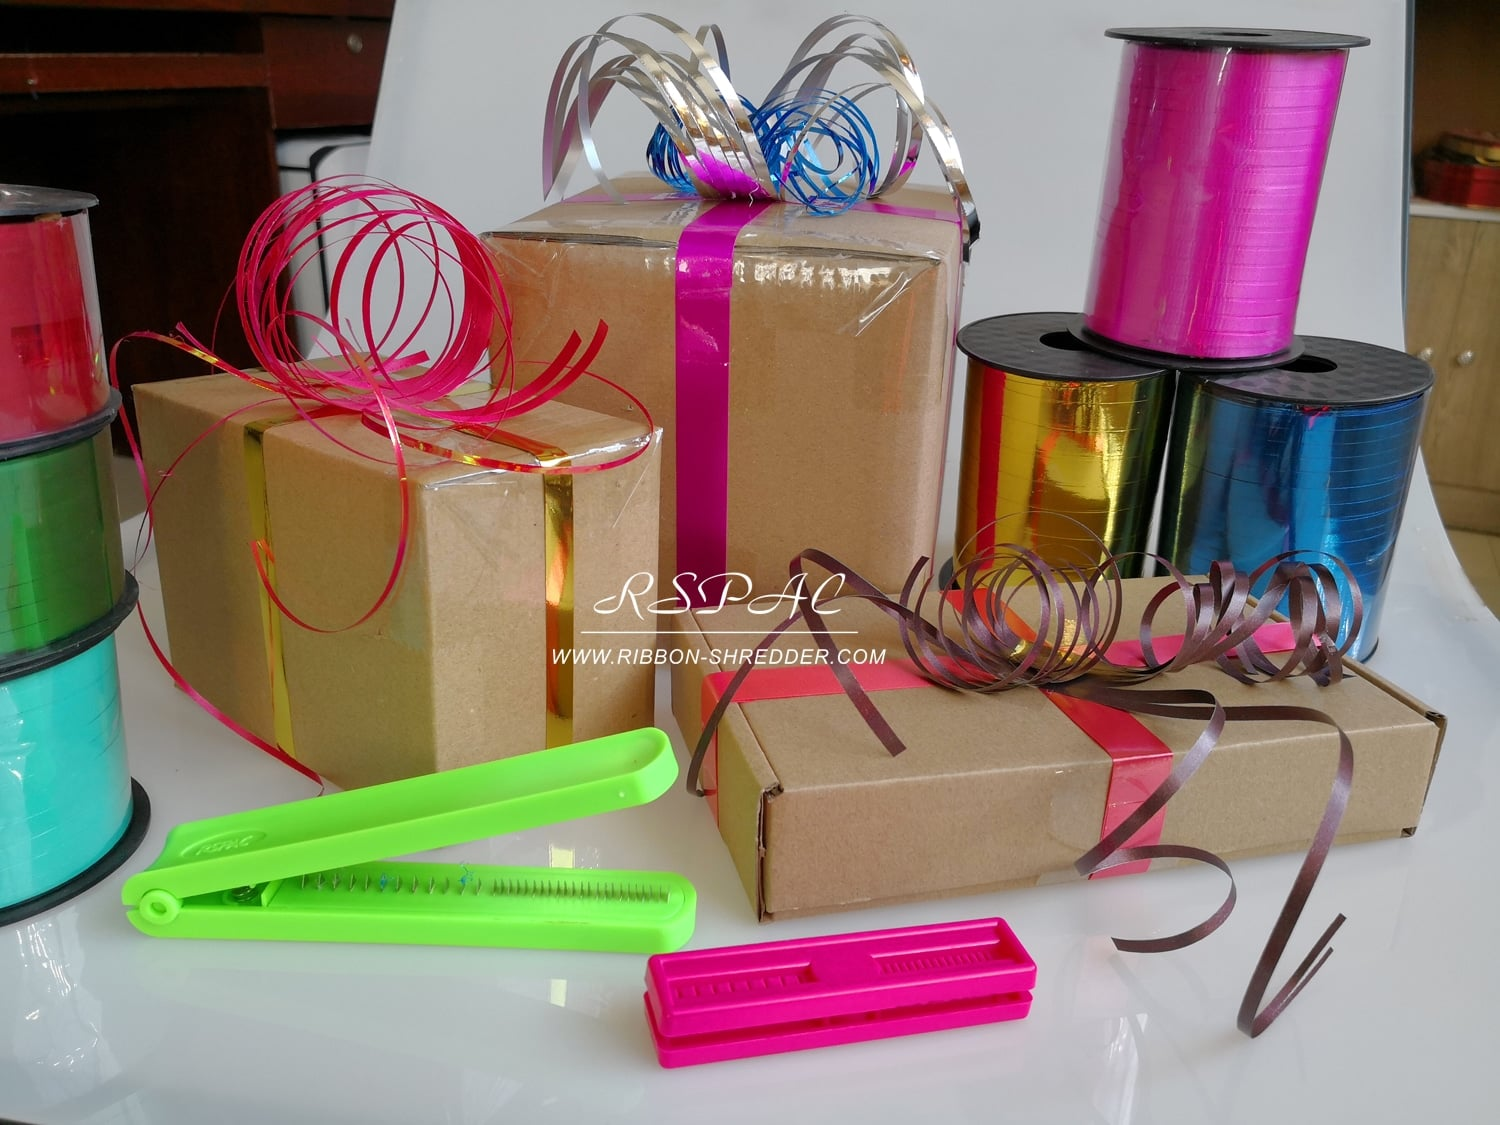 Ribbon-Shredder-Curler-Tool-for-Gift-Wrapping-Christmas-New-Year